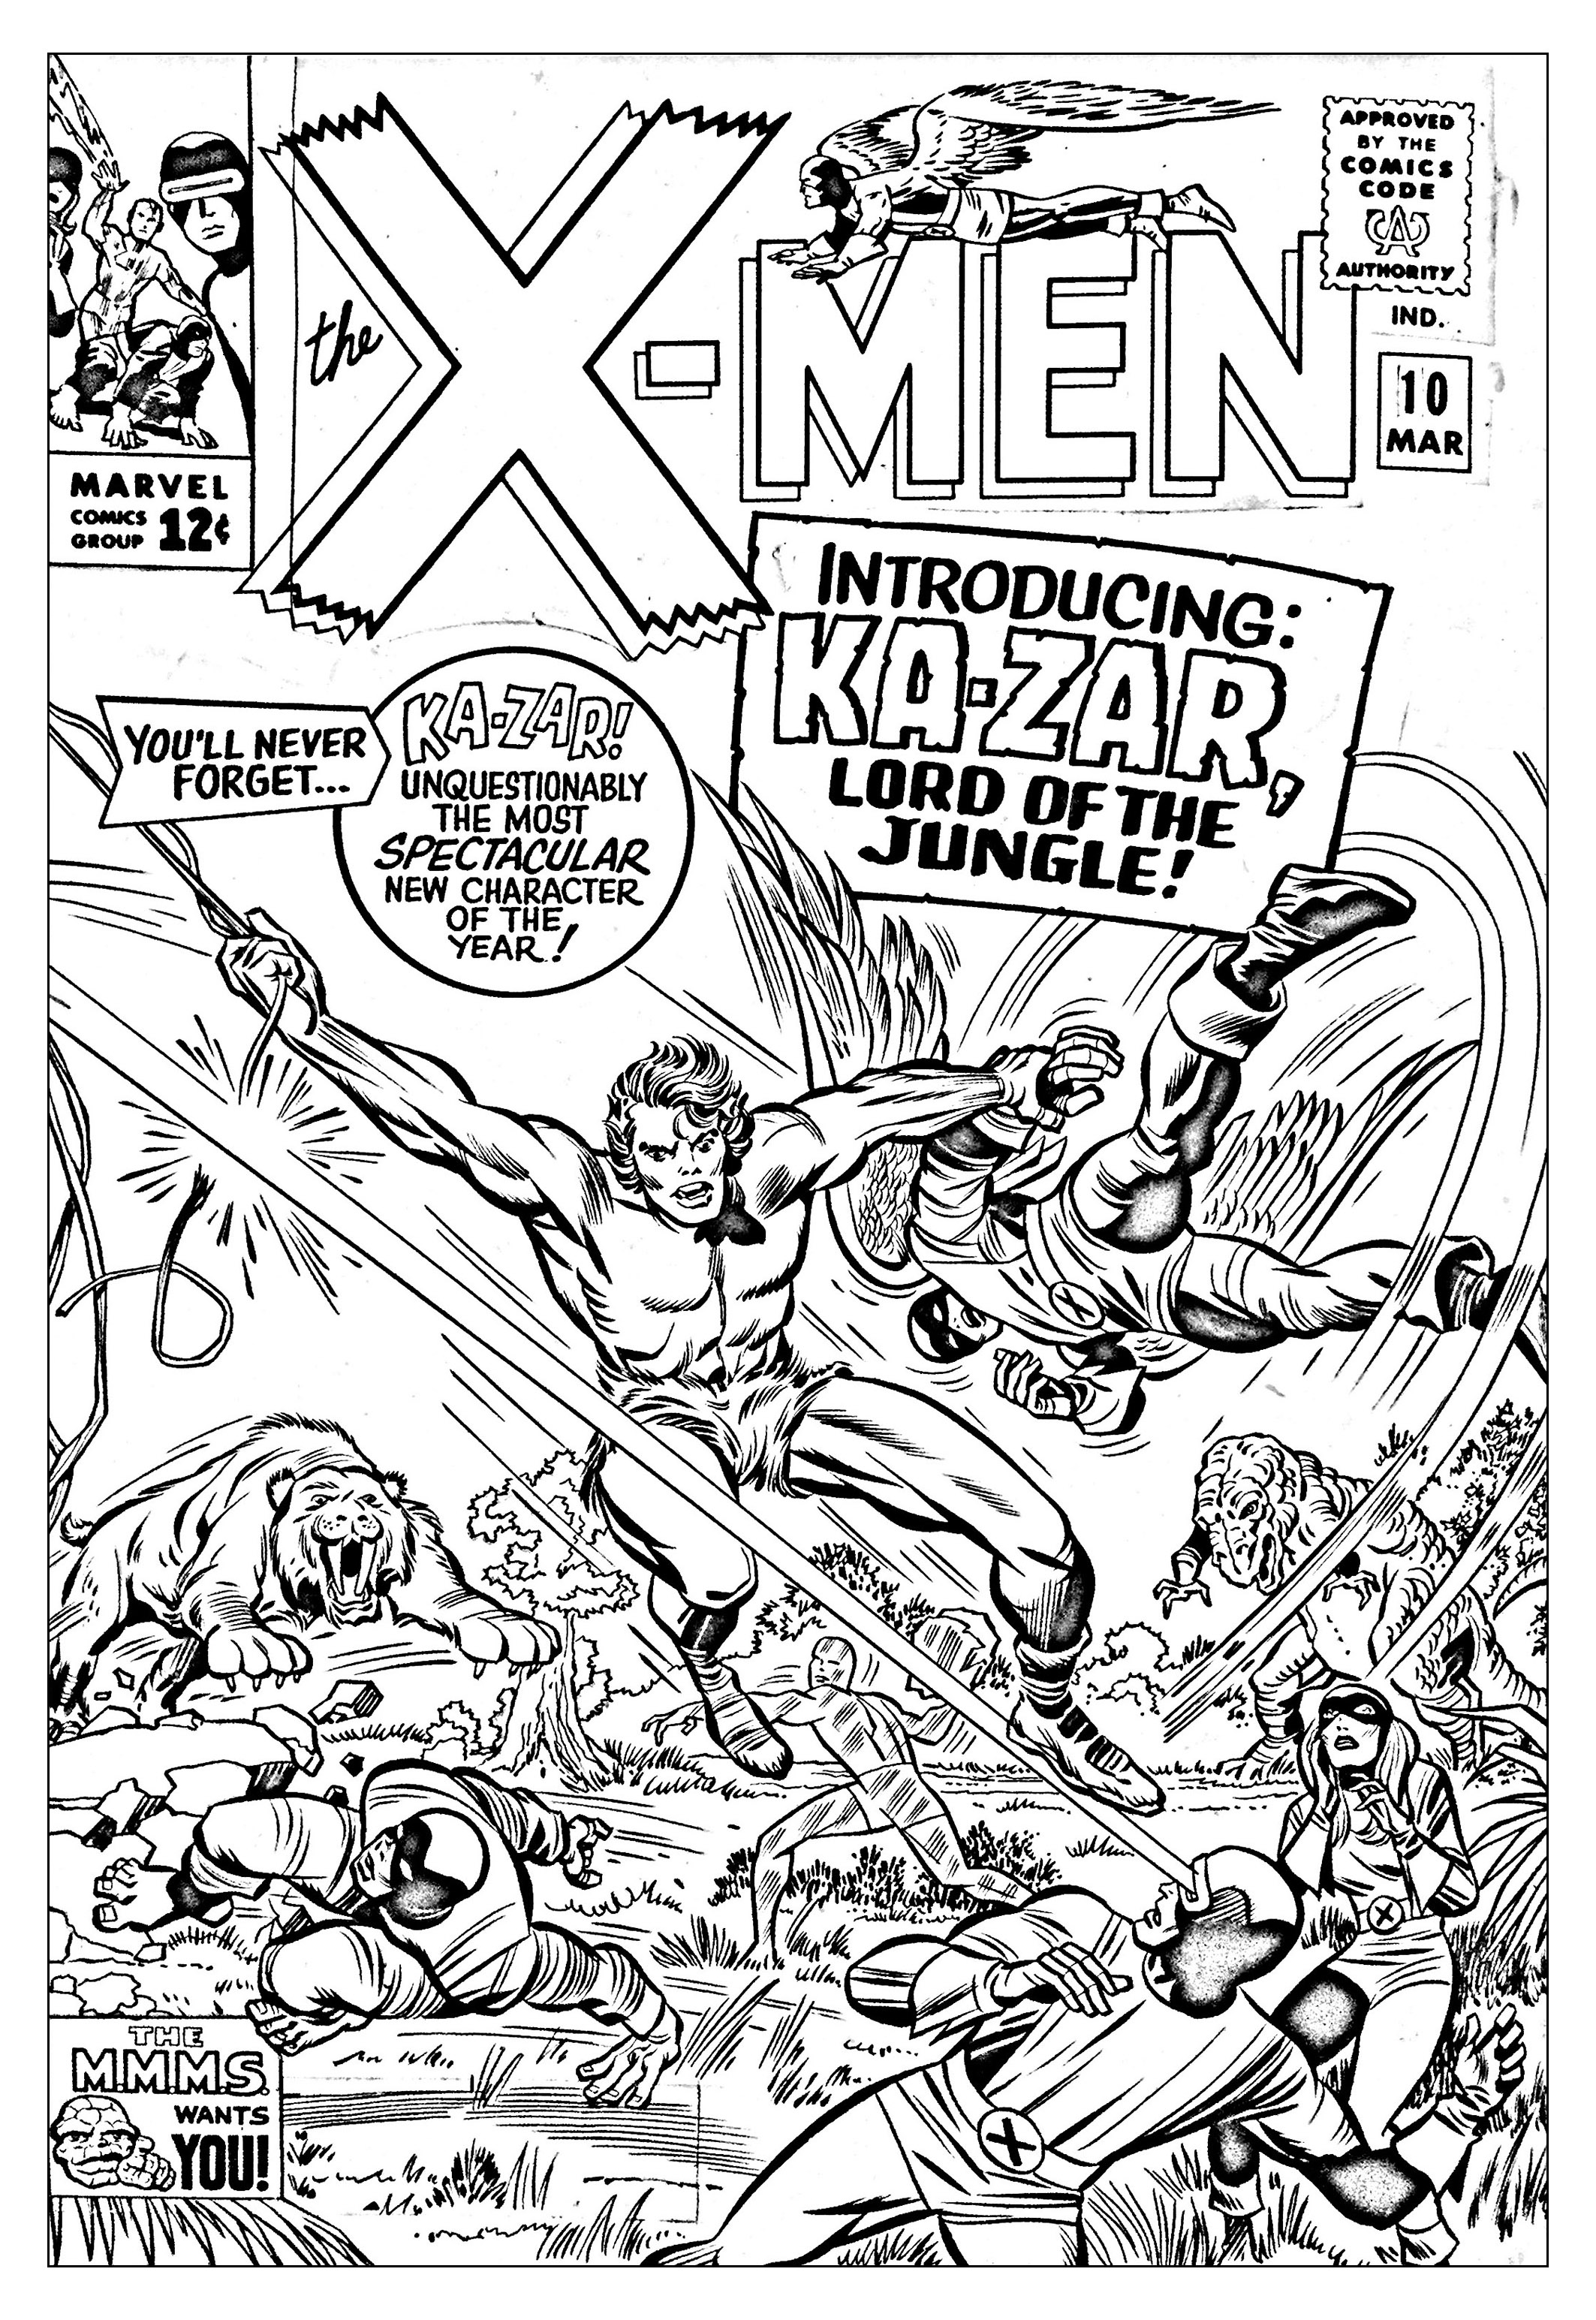 comic book coloring pages Comics xmen 1965 unreleased cover   Books Adult Coloring Pages comic book coloring pages